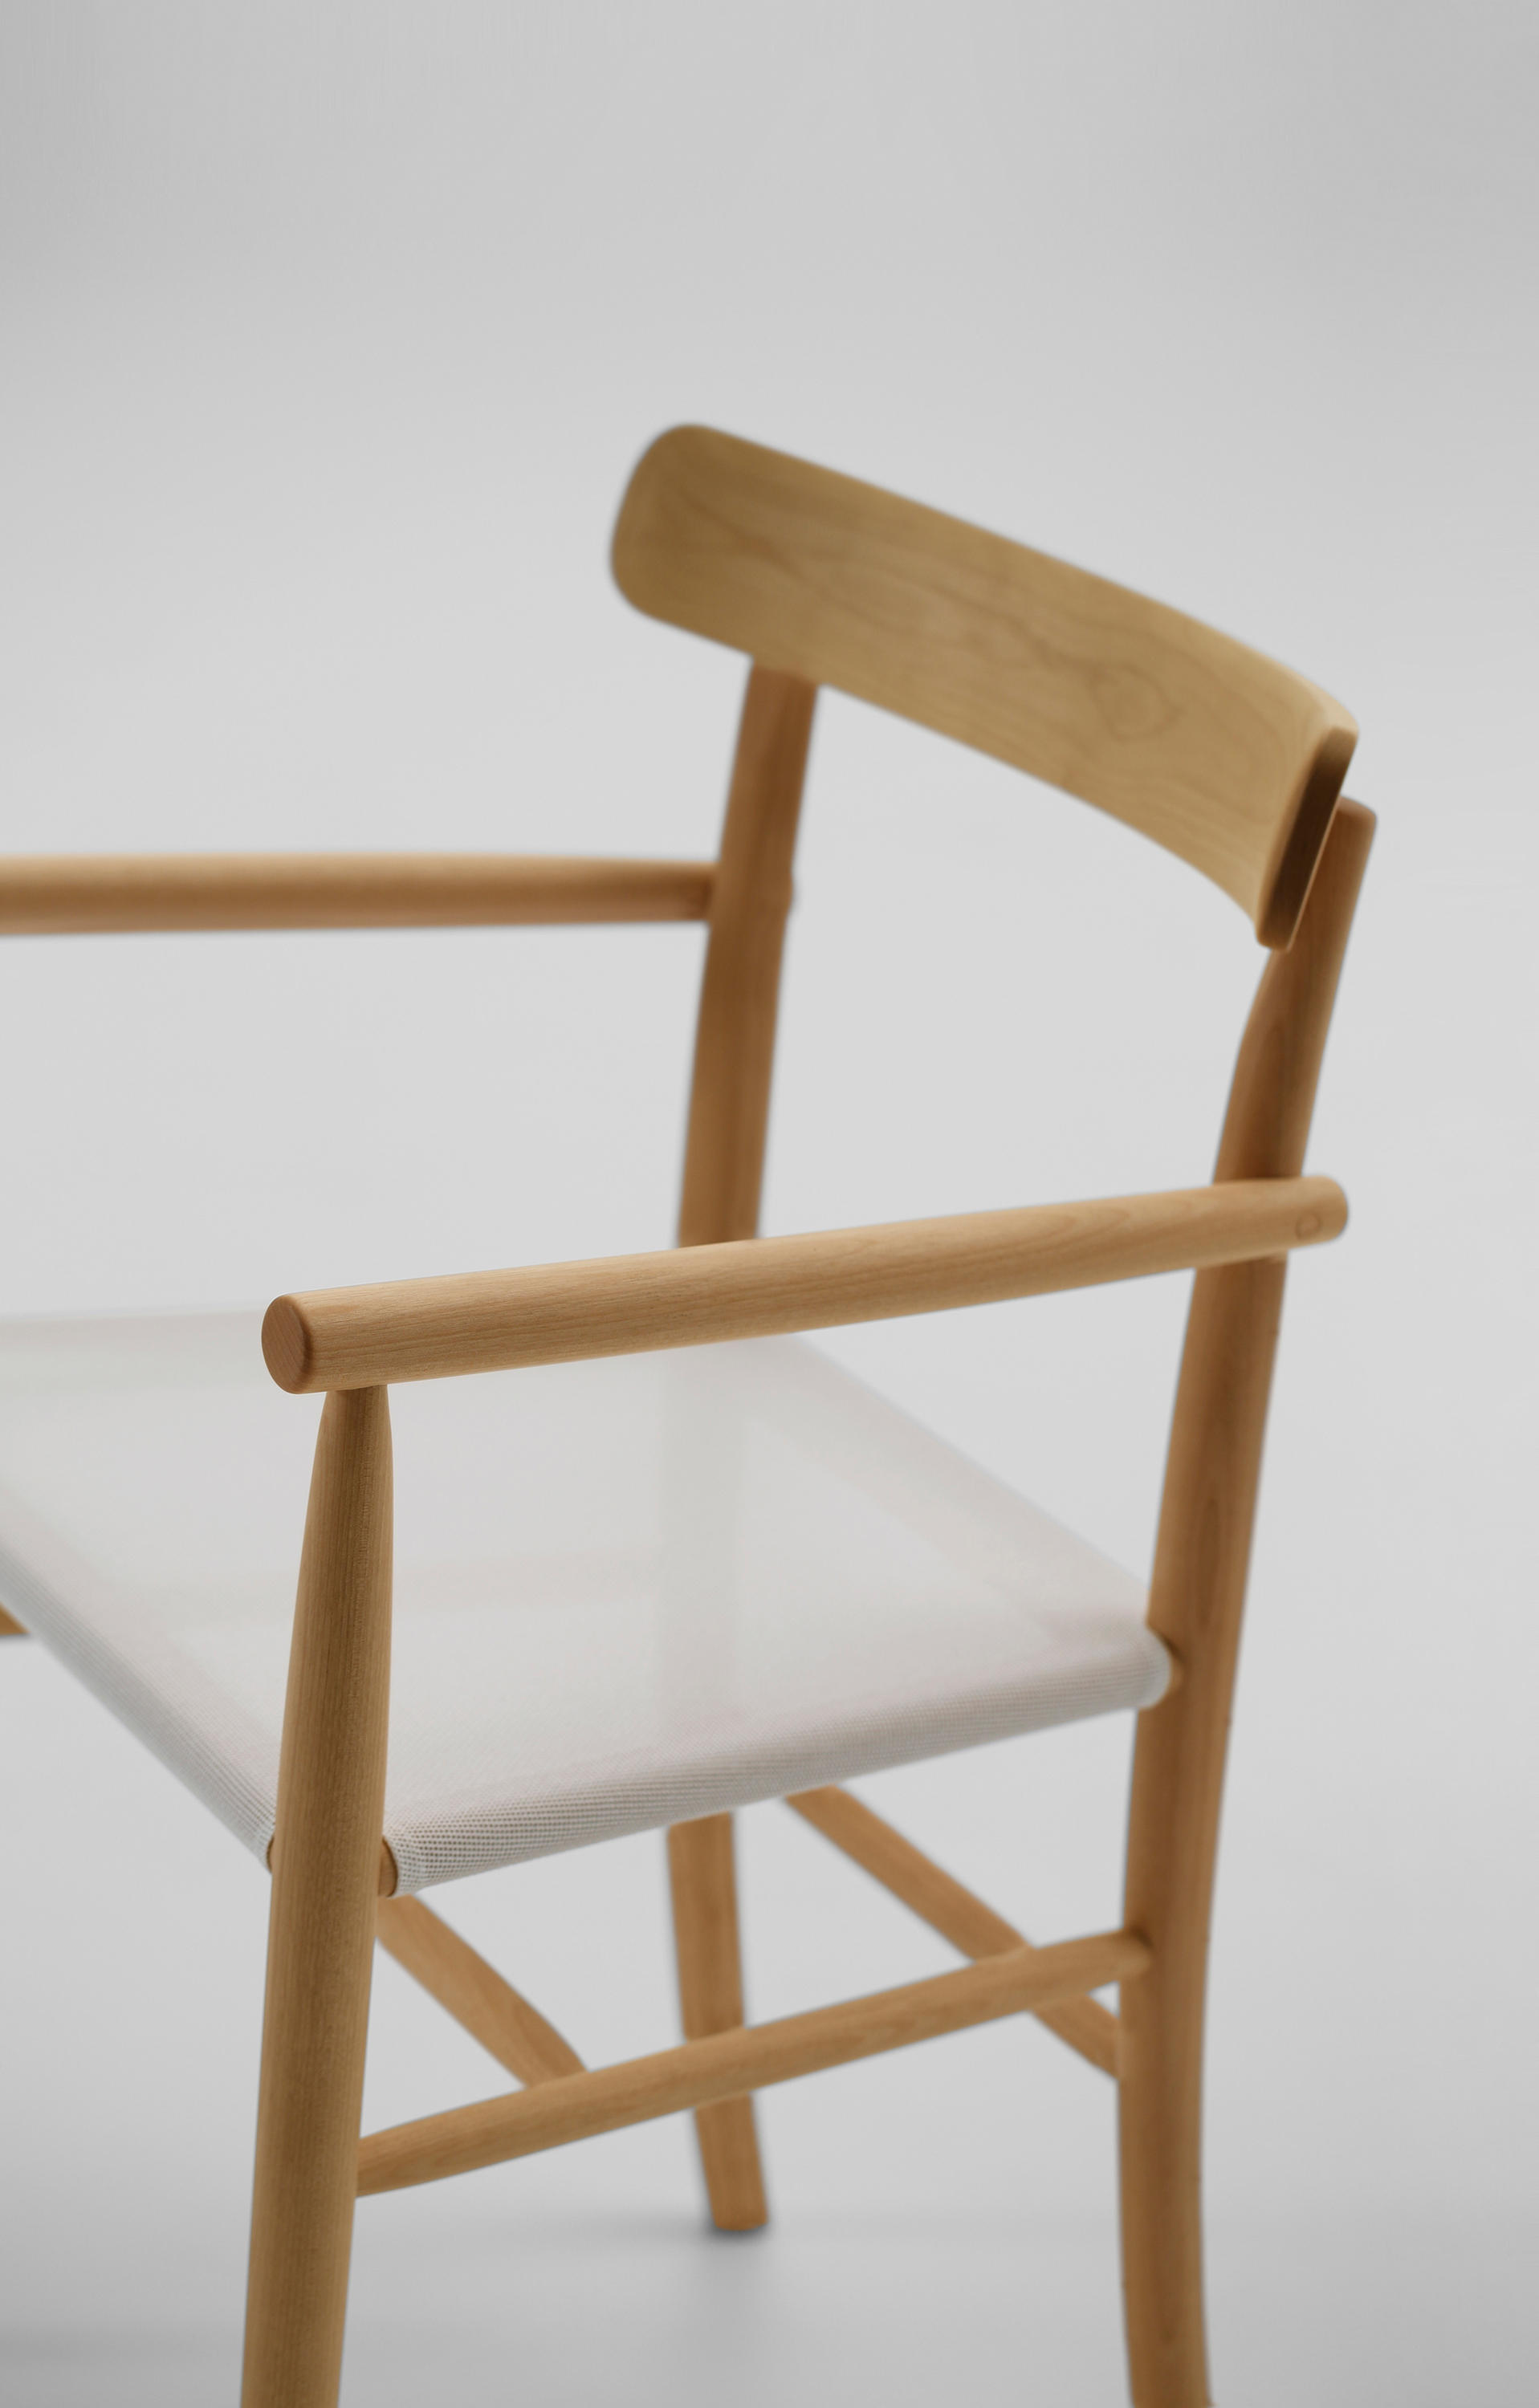 Merveilleux ... Lightwood Arm Chair (Mesh Seat) By MARUNI | Chairs